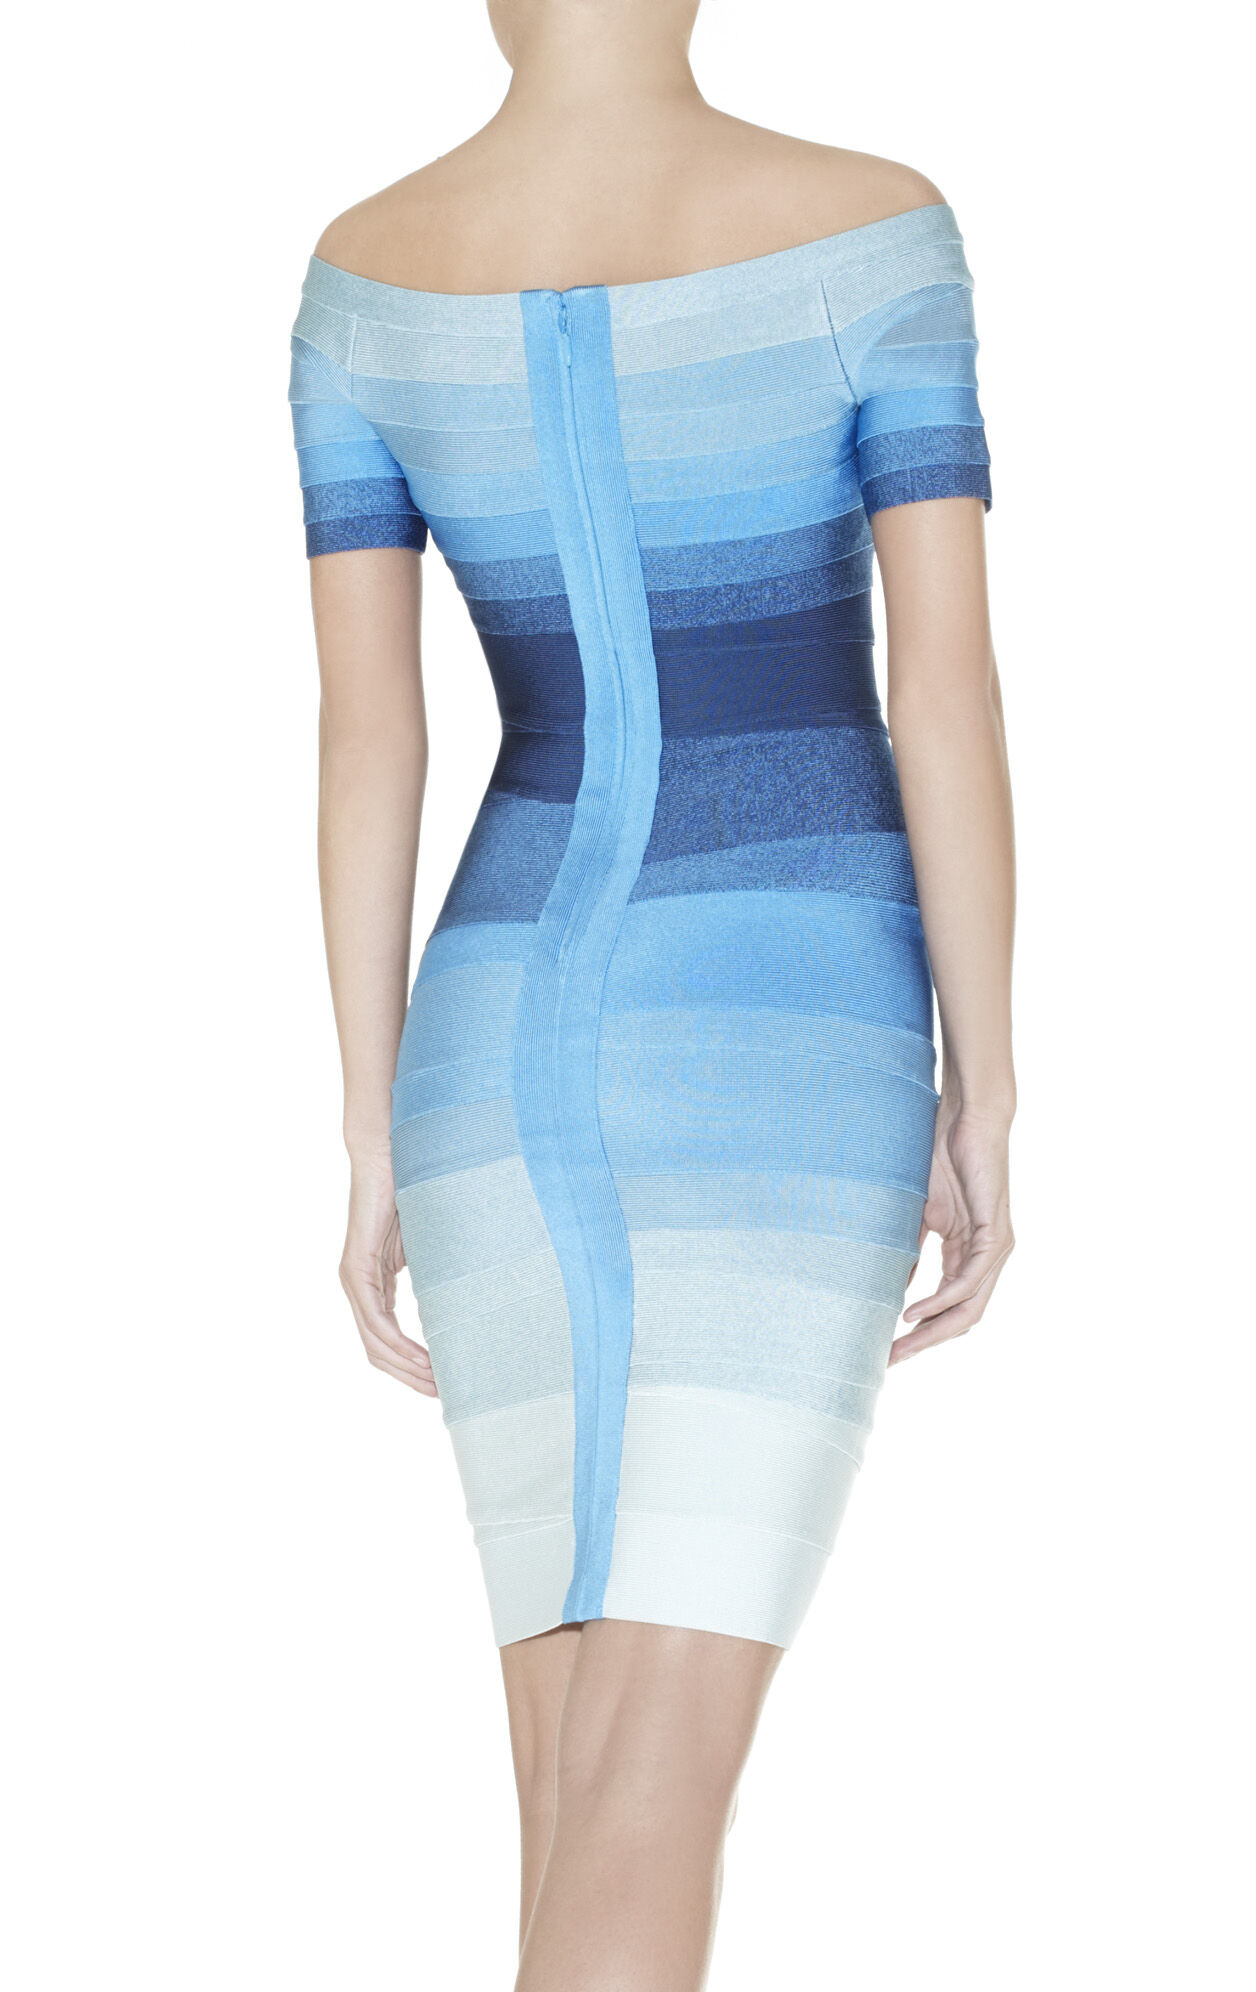 Johanna Ombre Bandage Dress